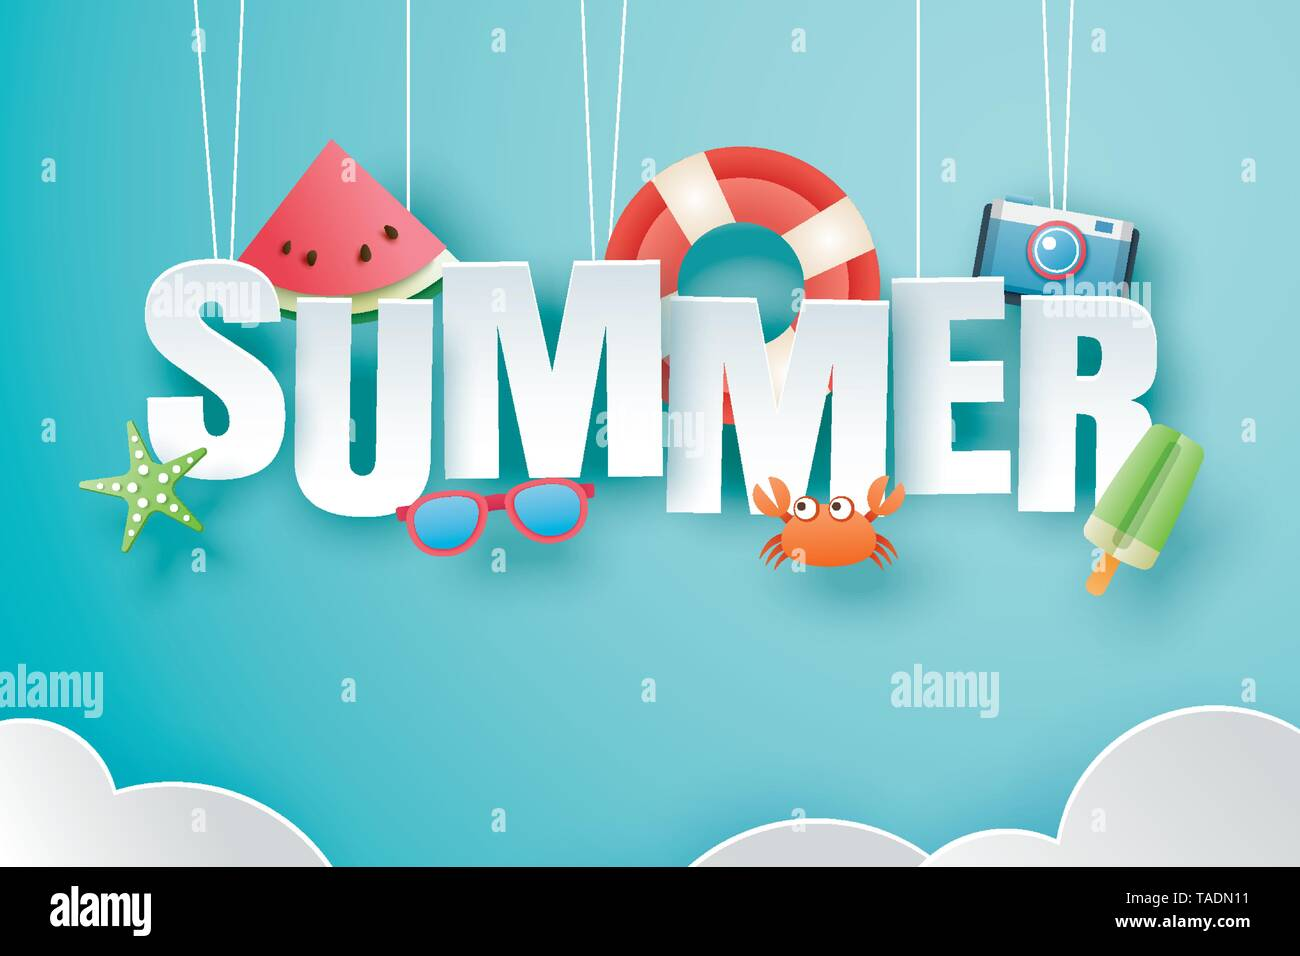 Hello summer with decoration origami hanging on blue sky background. Paper art and craft style. Vector illustration of life ring, ice cream, camera, w - Stock Image